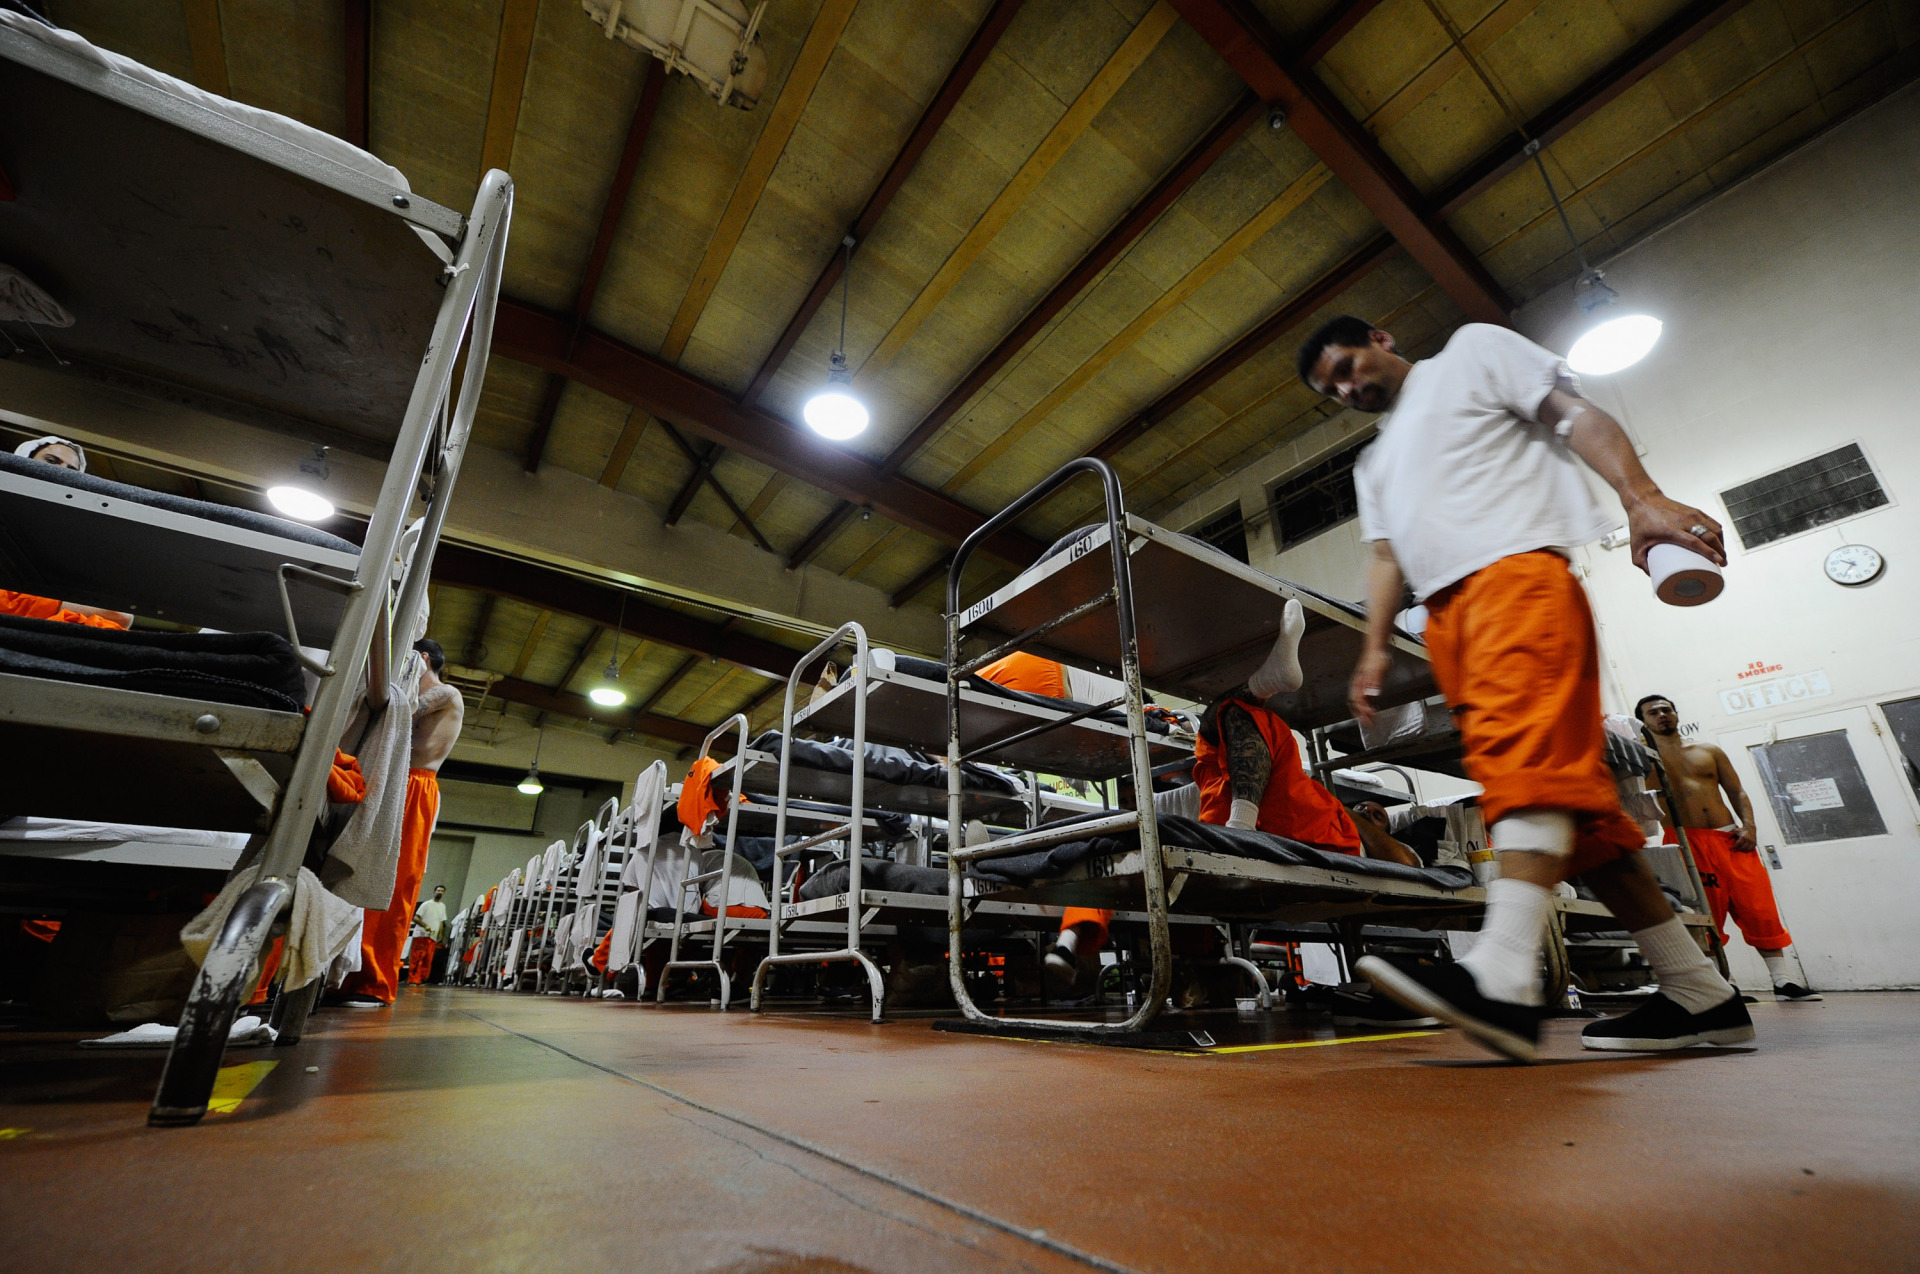 An inmate at the Chino California Institution for Men State Prison sleeps on his bunk bed in a gymnasium that was modified to house prisoners on December 10, 2010 in Chino, California.